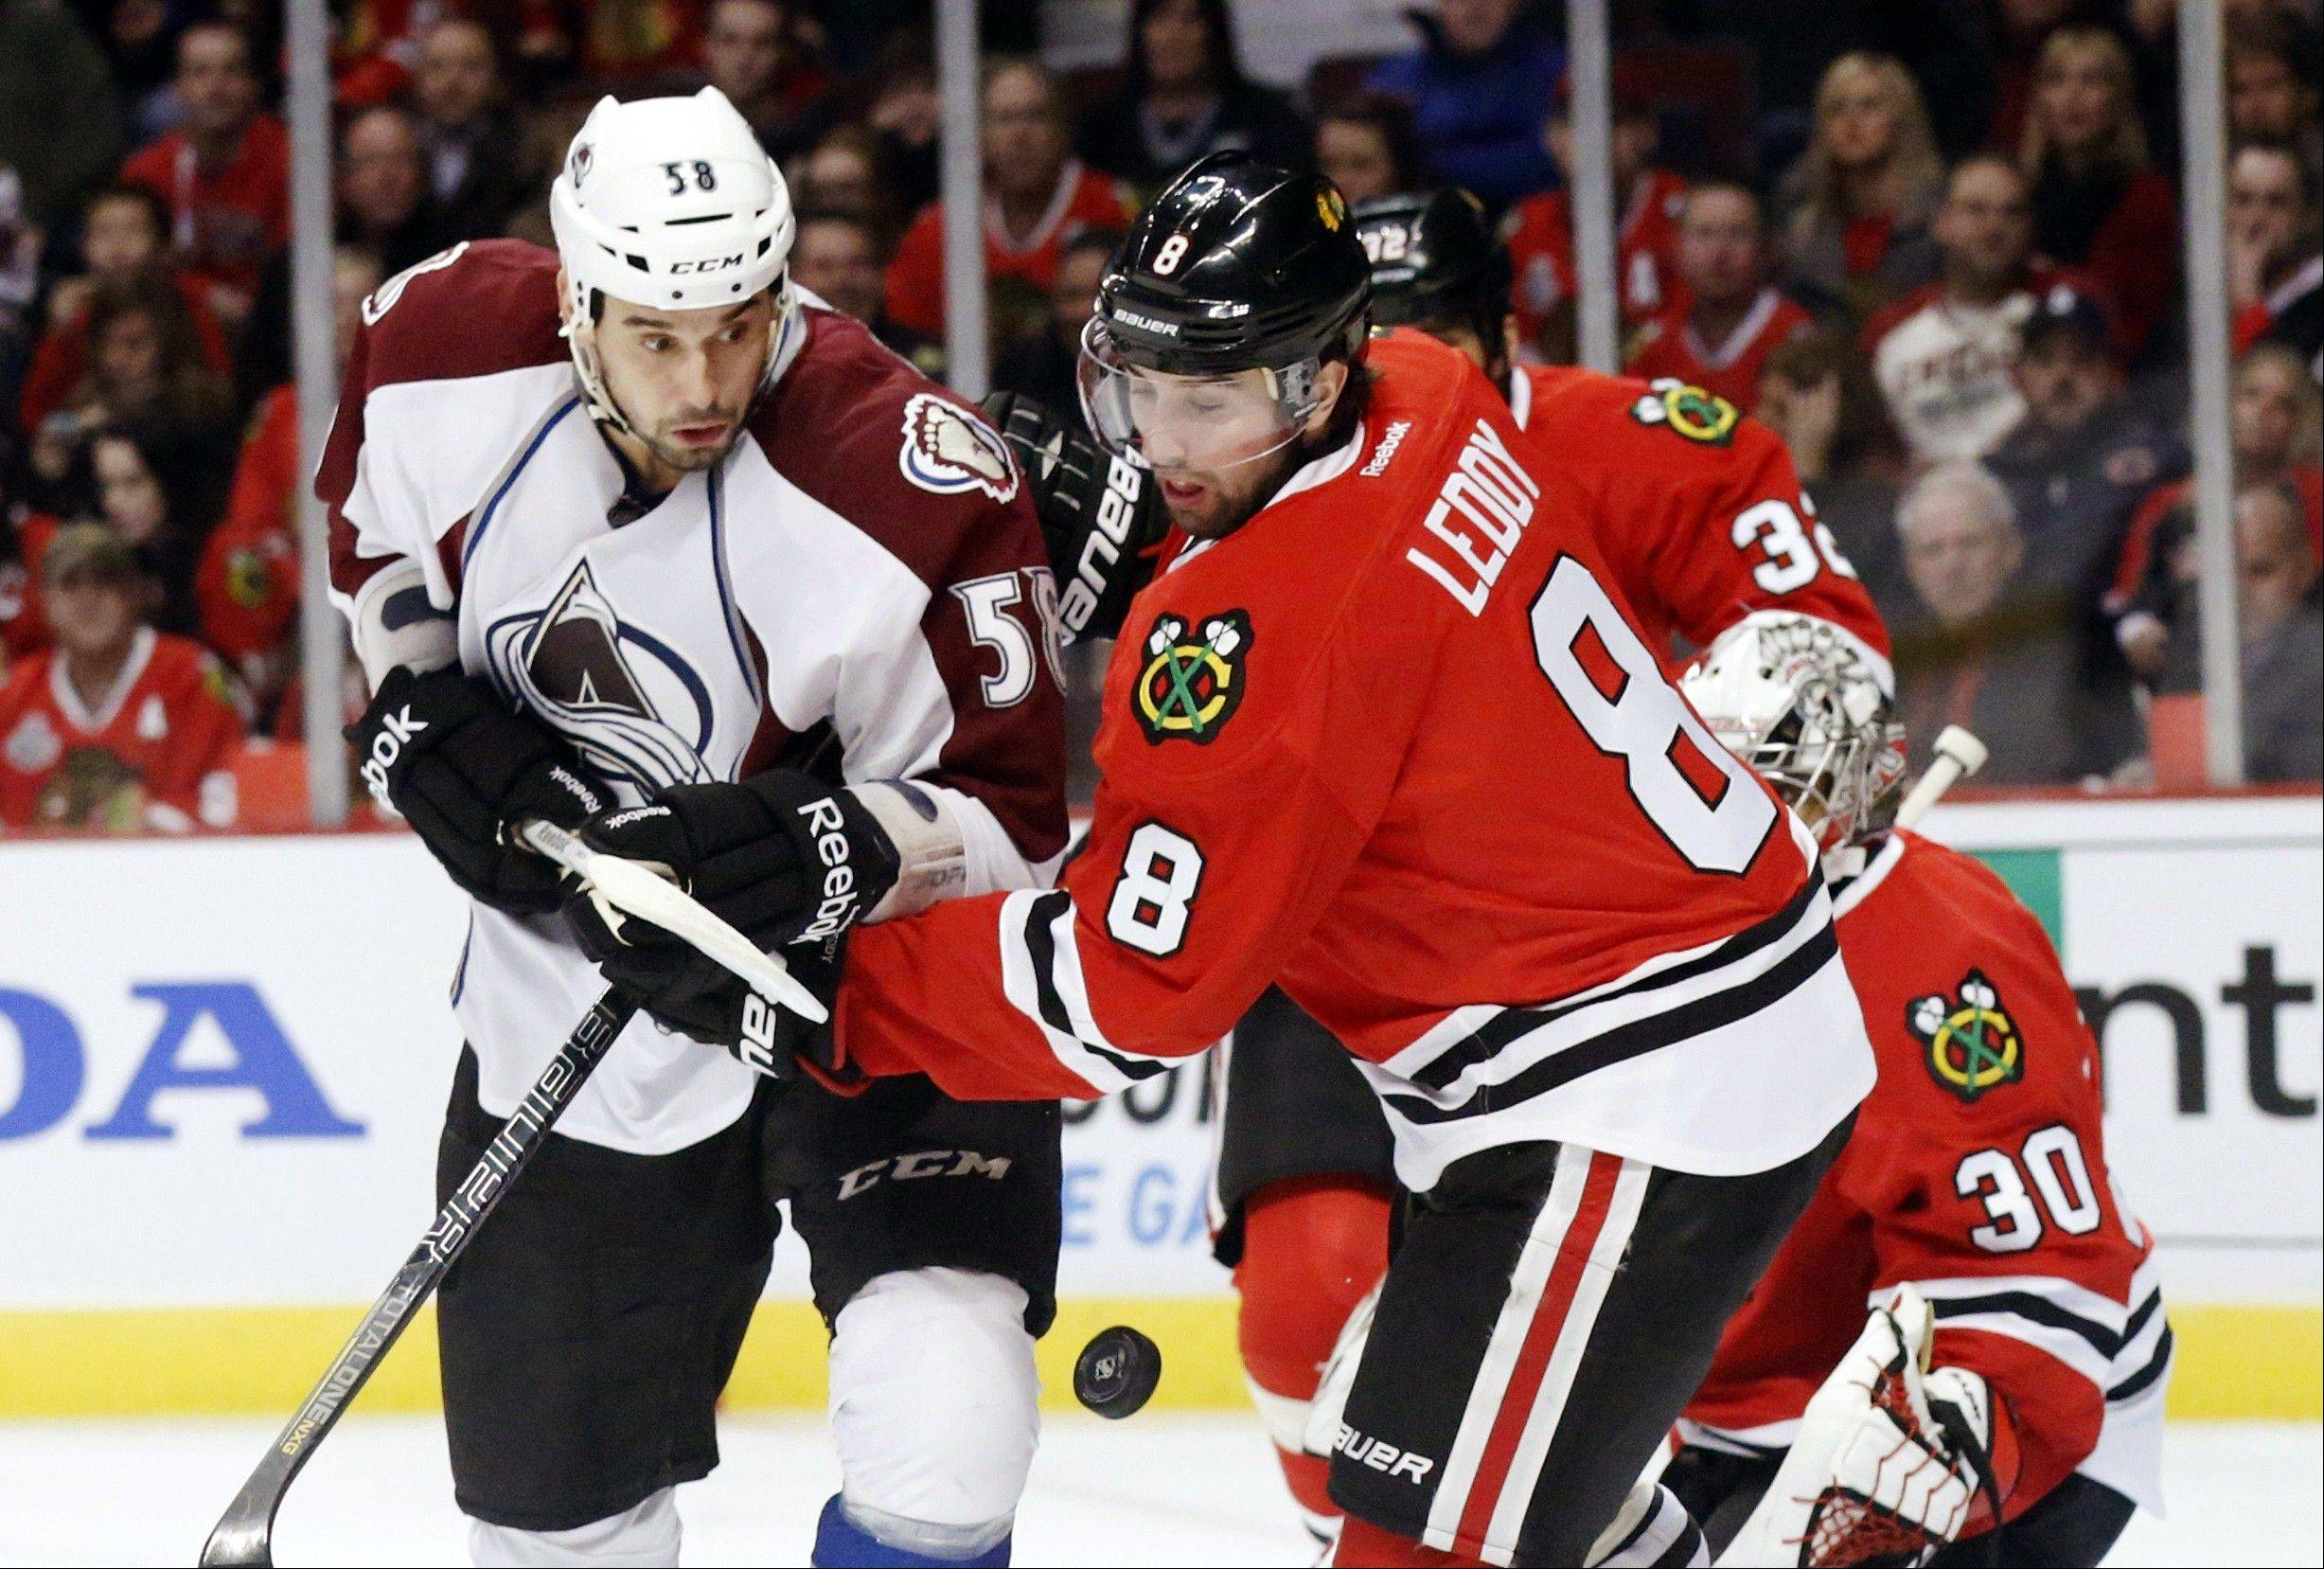 Chicago Blackhawks defenseman Nick Leddy and Colorado Avalanche left wing Patrick Bordeleau battle for a loose puck during the first period.